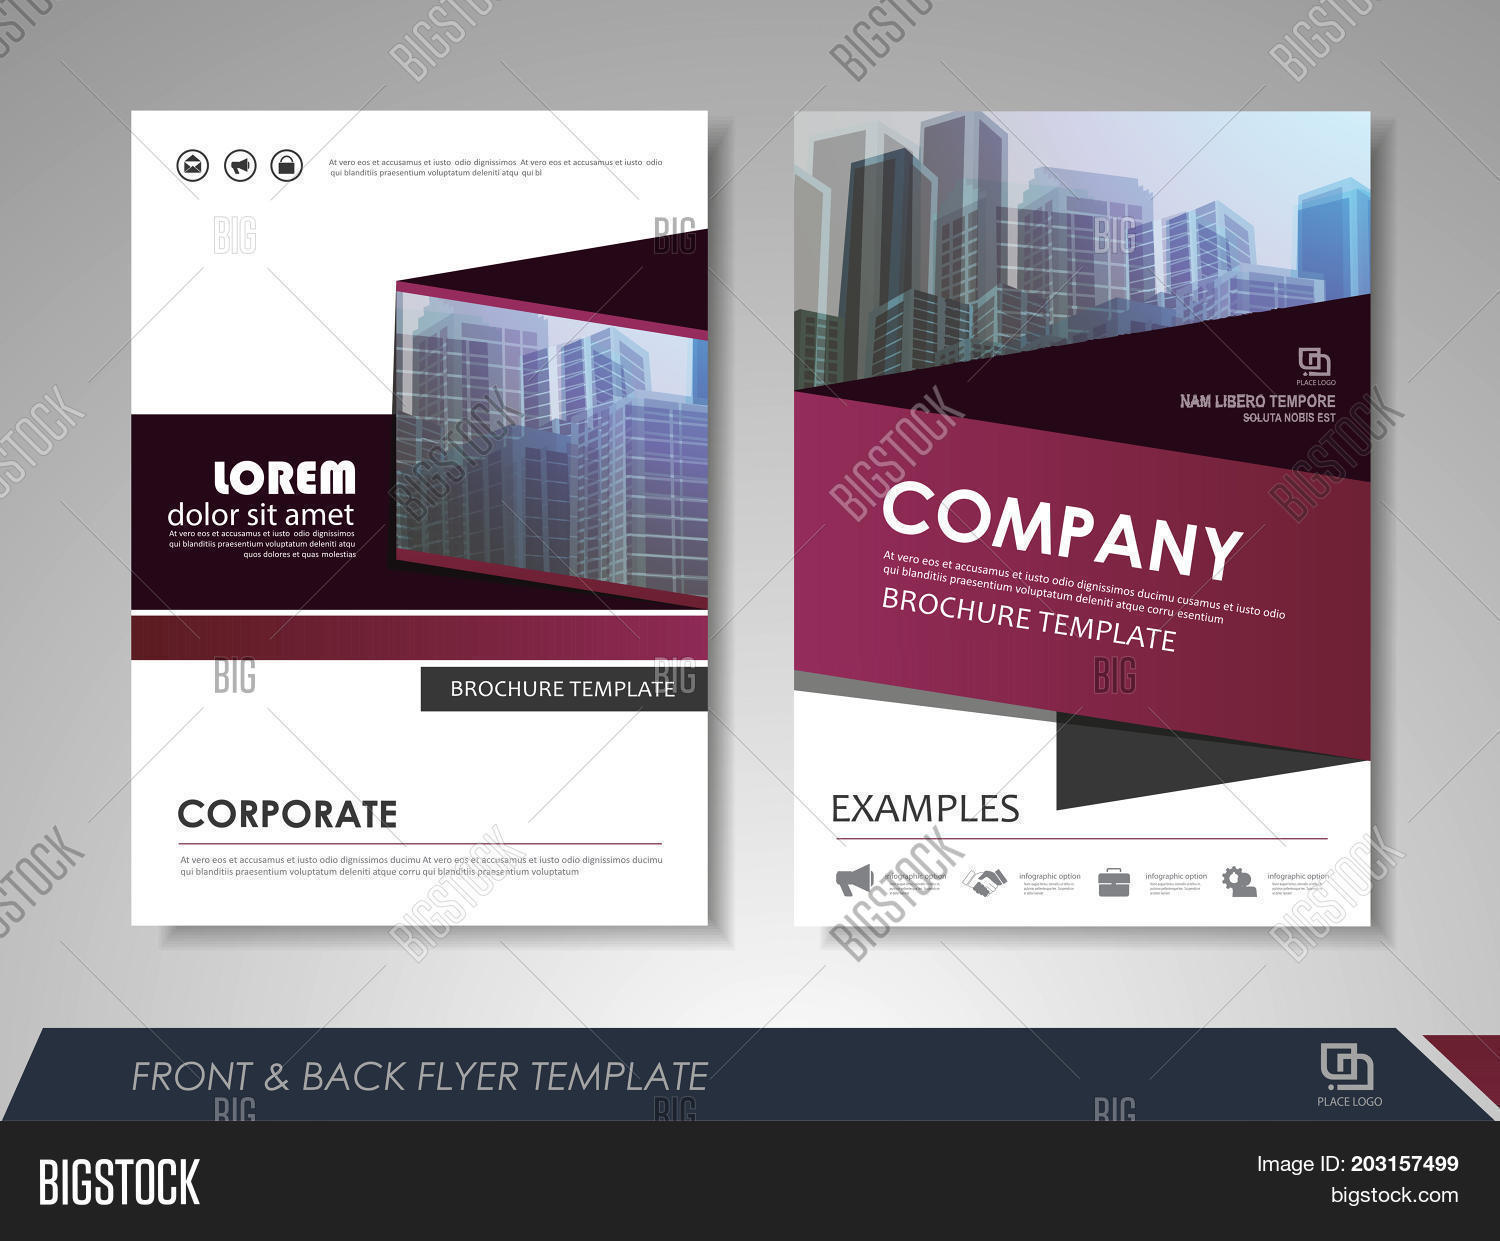 Modern Purple Vector   Photo  Free Trial    Bigstock Modern purple Brochure design  Brochure template  Brochures  Brochure layout   Brochure cover